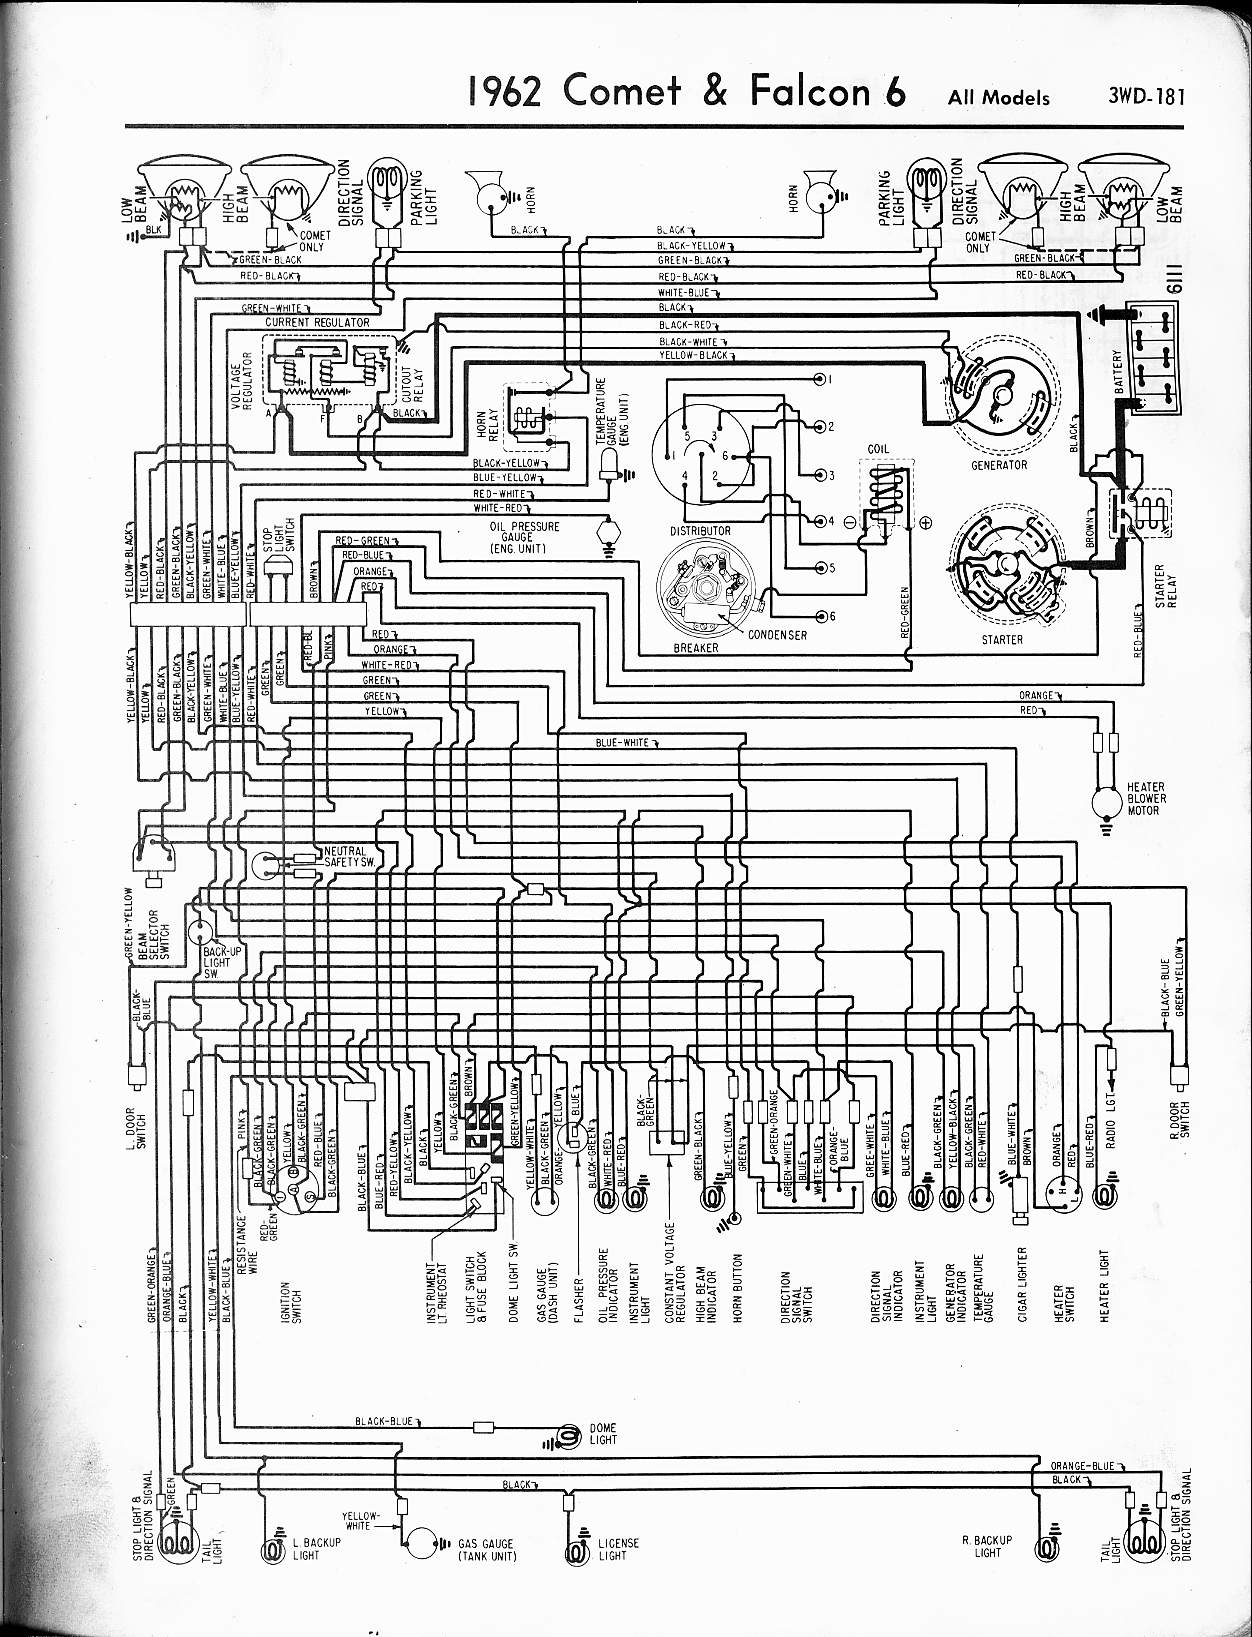 1979 ford ranchero wiring diagram wiring diagram user ford ranchero wiring diagrams wiring diagrams bib 1979 ford ranchero wiring diagram